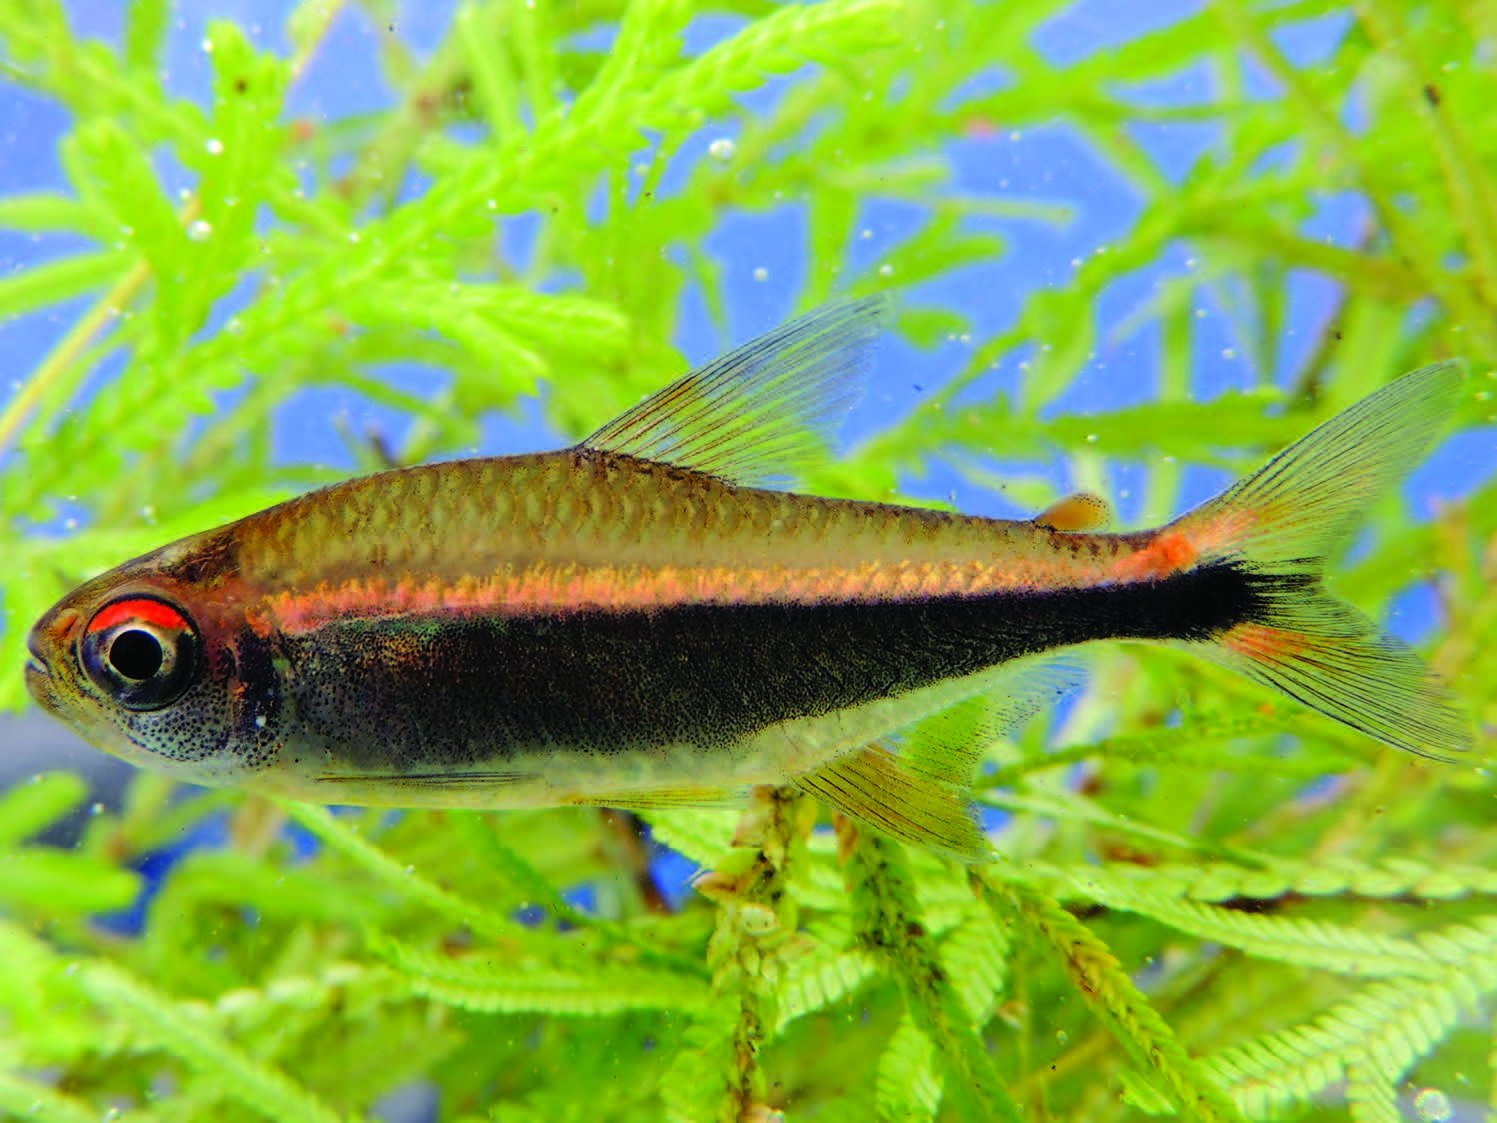 A tetra from Colombia